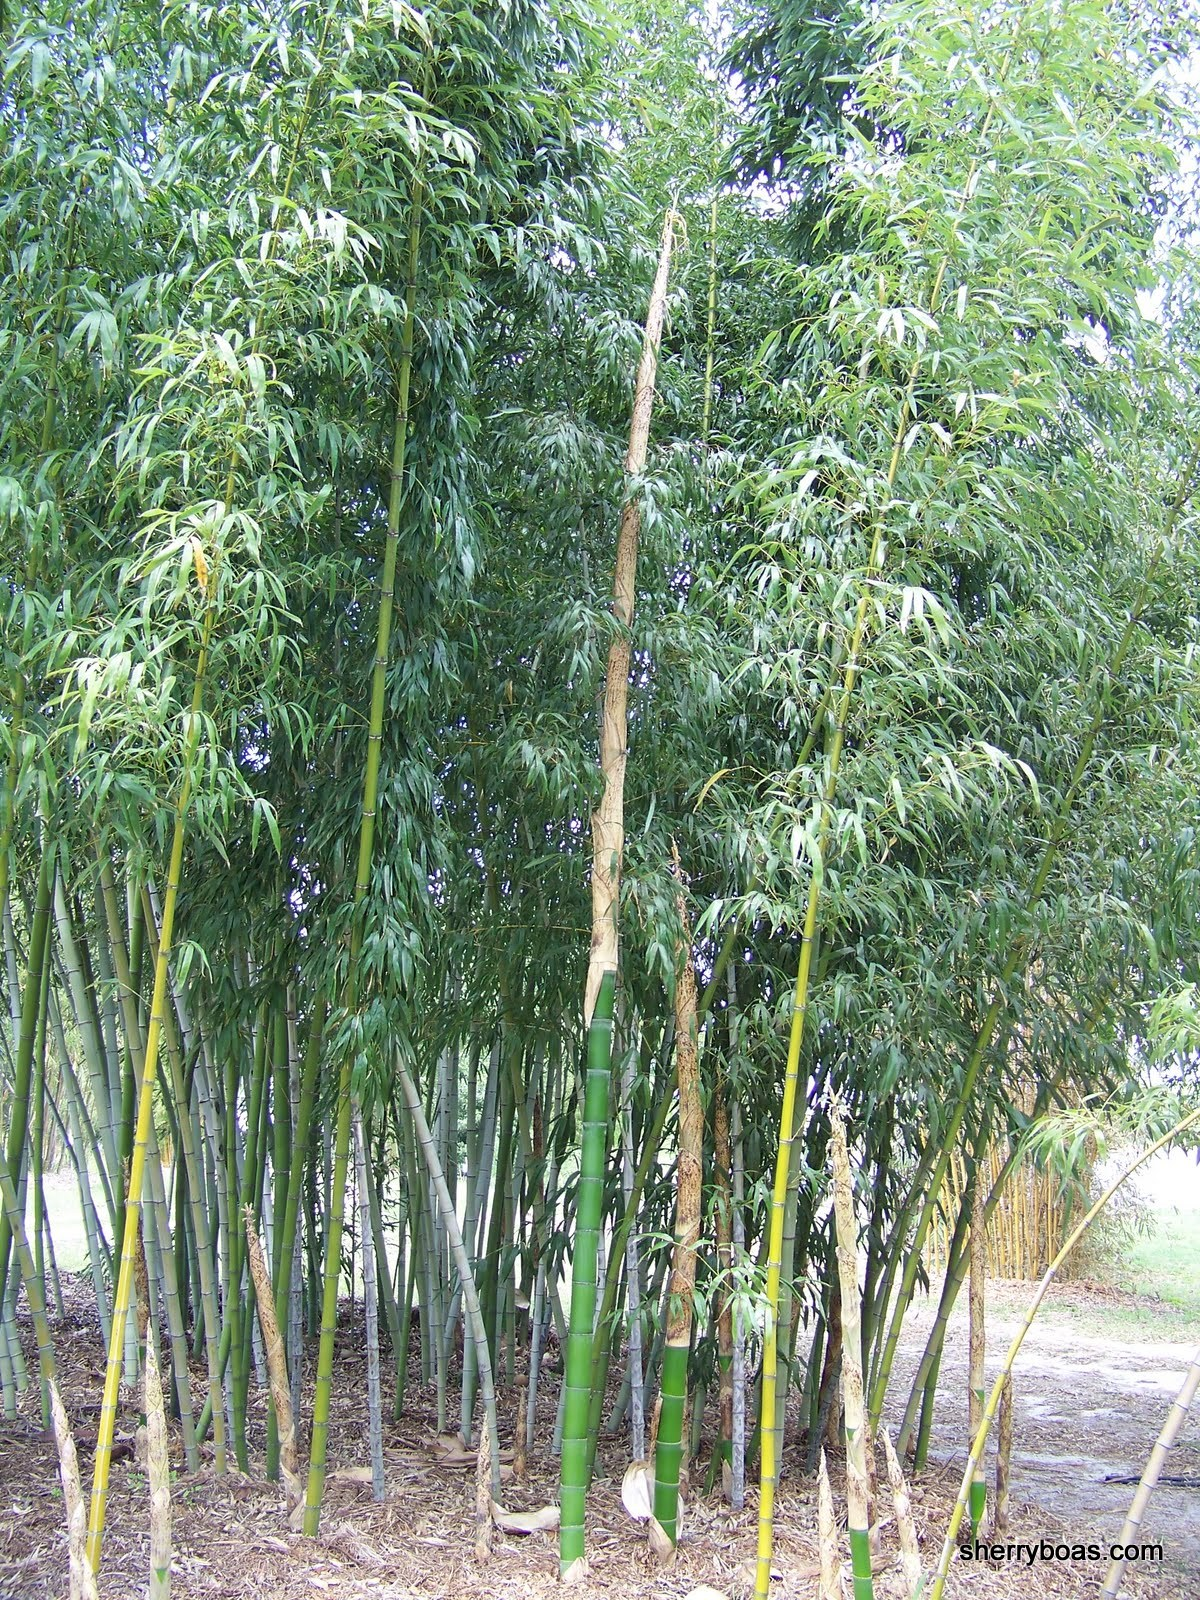 Beautiful bamboo bamboo the fastest growing plant on earth for What can you do with bamboo